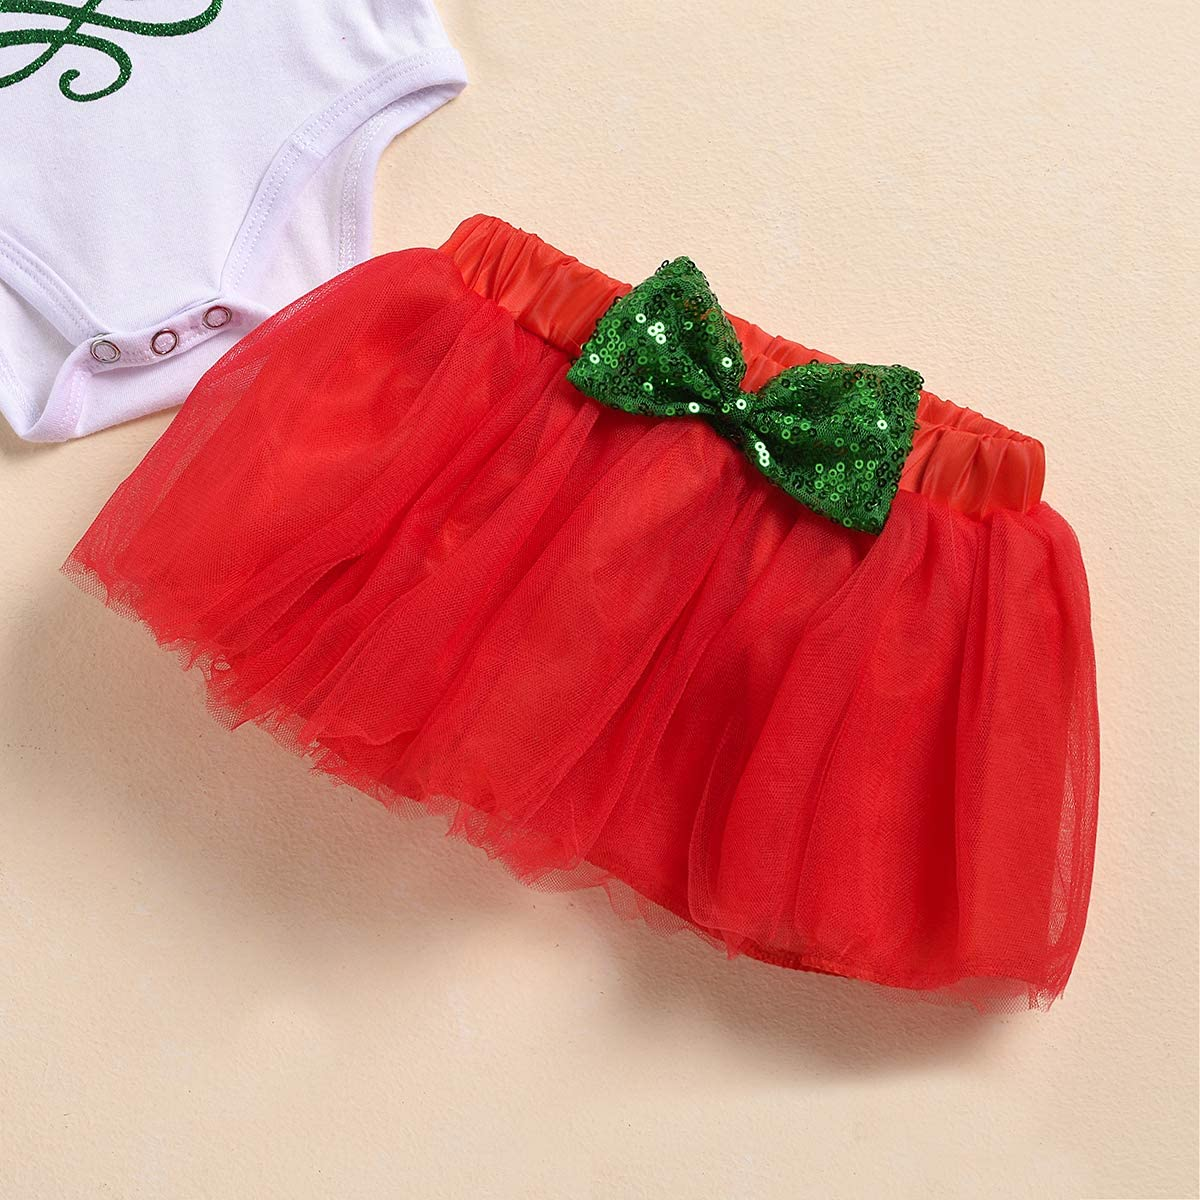 Newborn Toddler Girl Xmas Clothes My 1st Christmas Romper Bowtie Mesh Tutu Skirt+Sequins Bow+Striped Leg Warmers Outfits